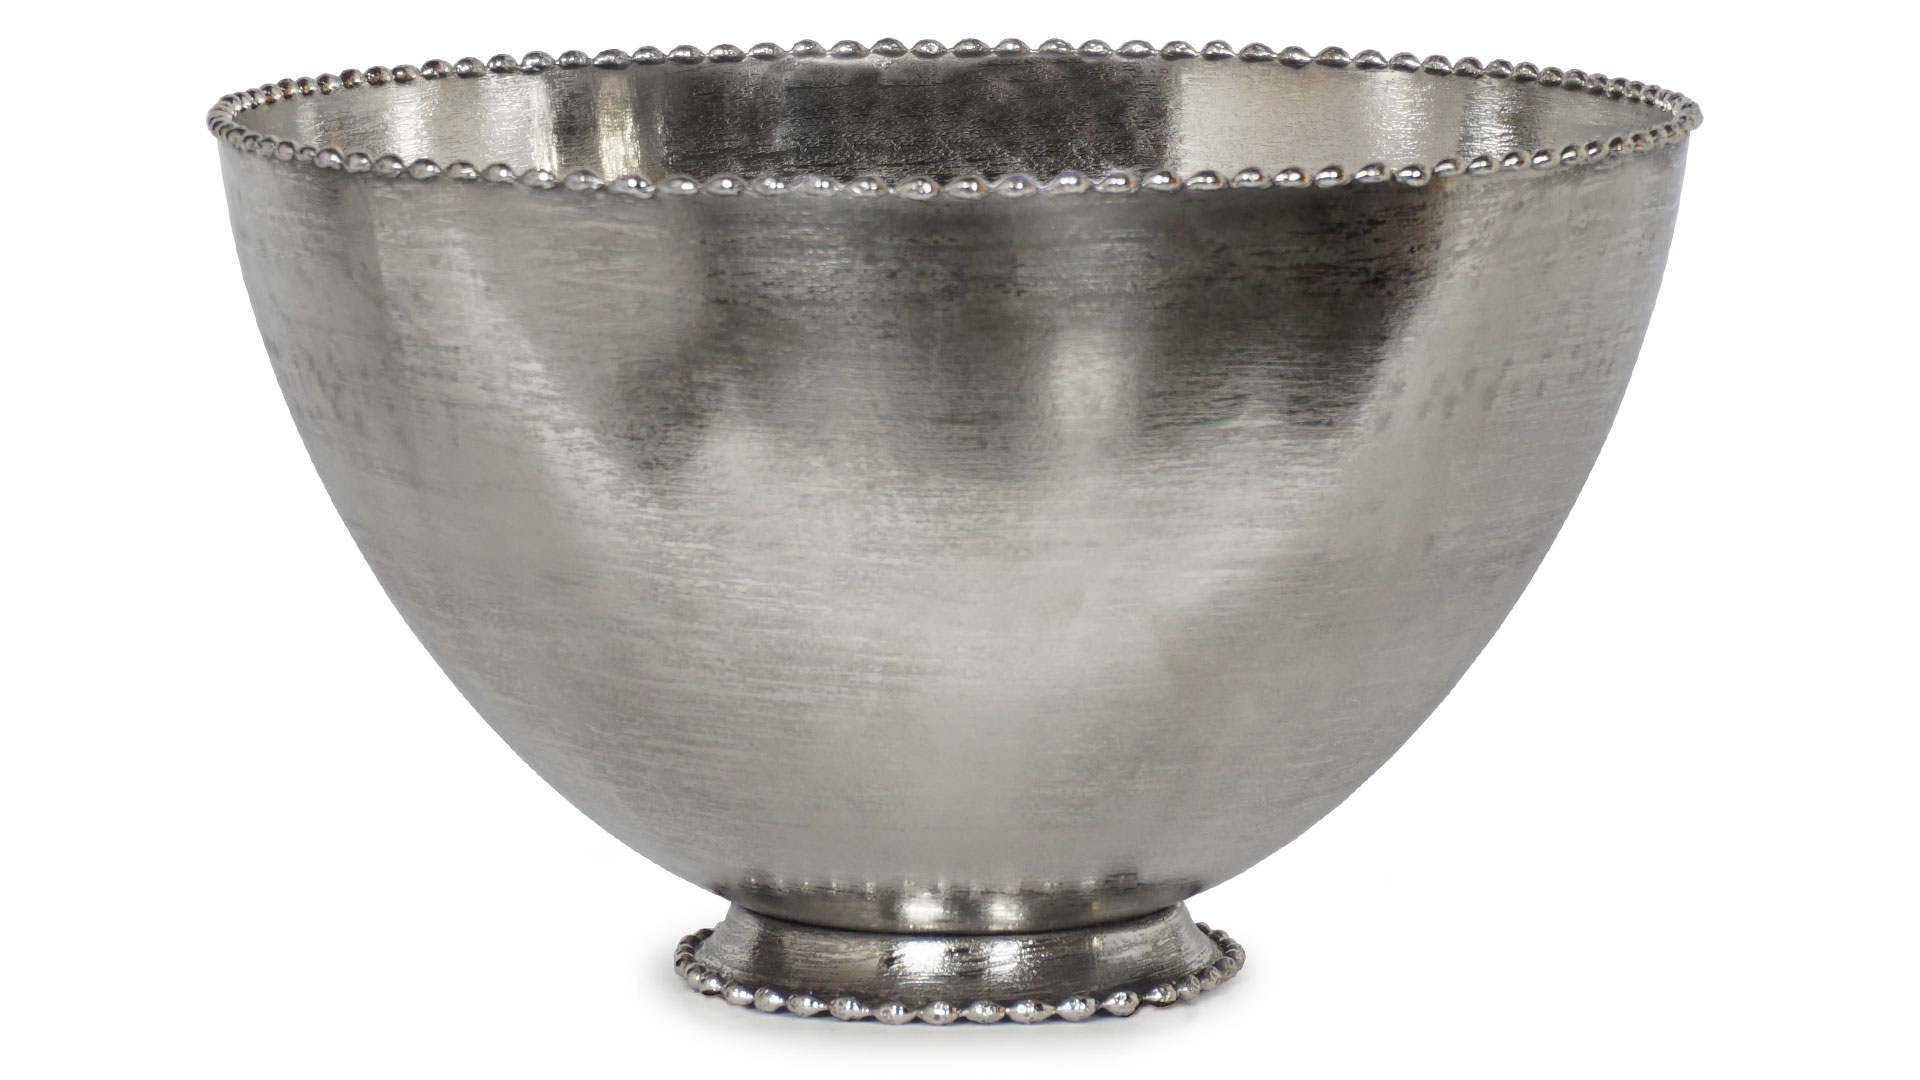 stainless steel decorative bowl - Fauteuil Stainless